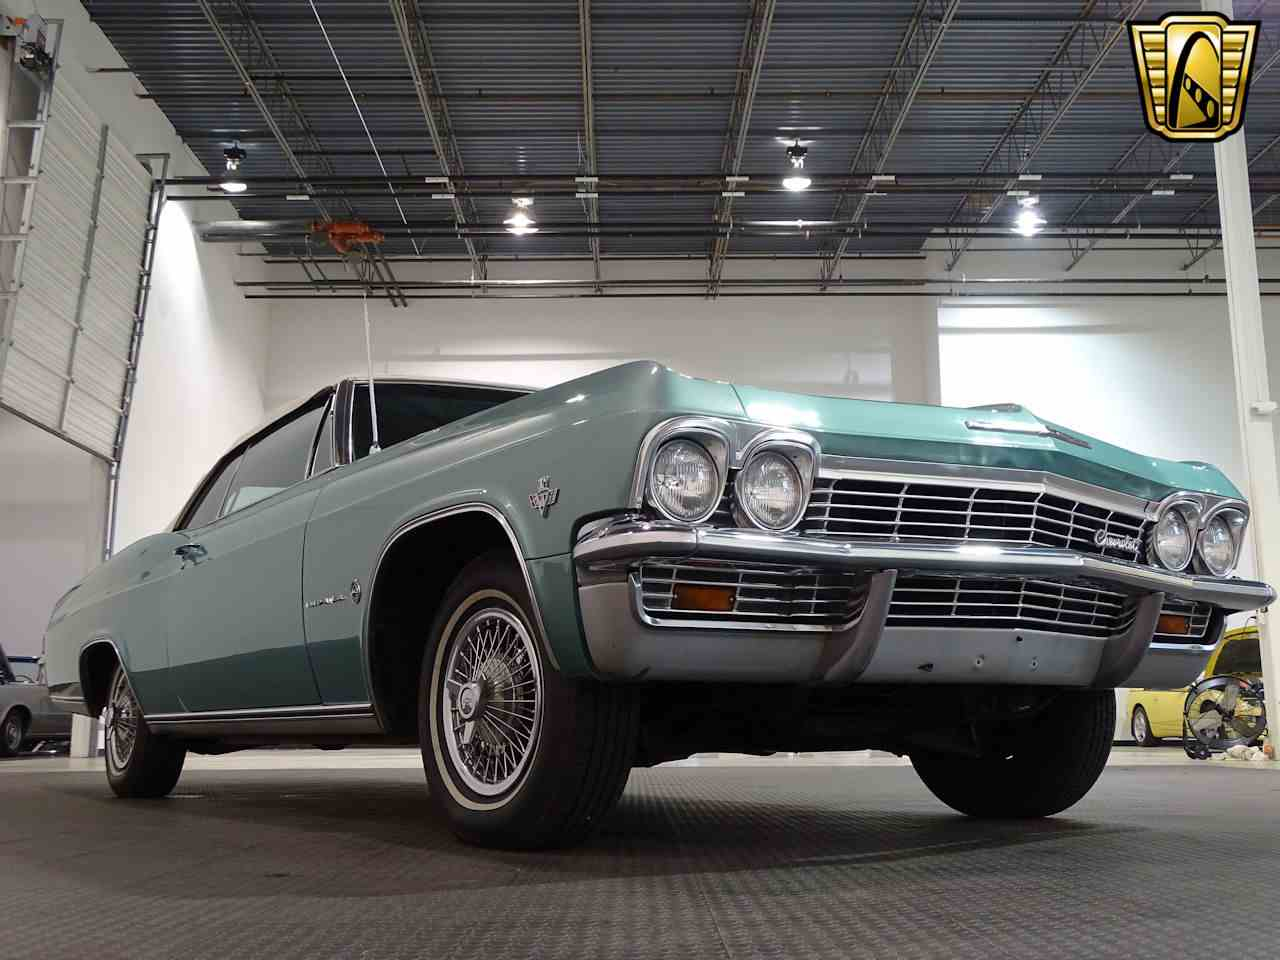 Large Picture of Classic '65 Chevrolet Impala located in Indiana - $34,995.00 - L5YV